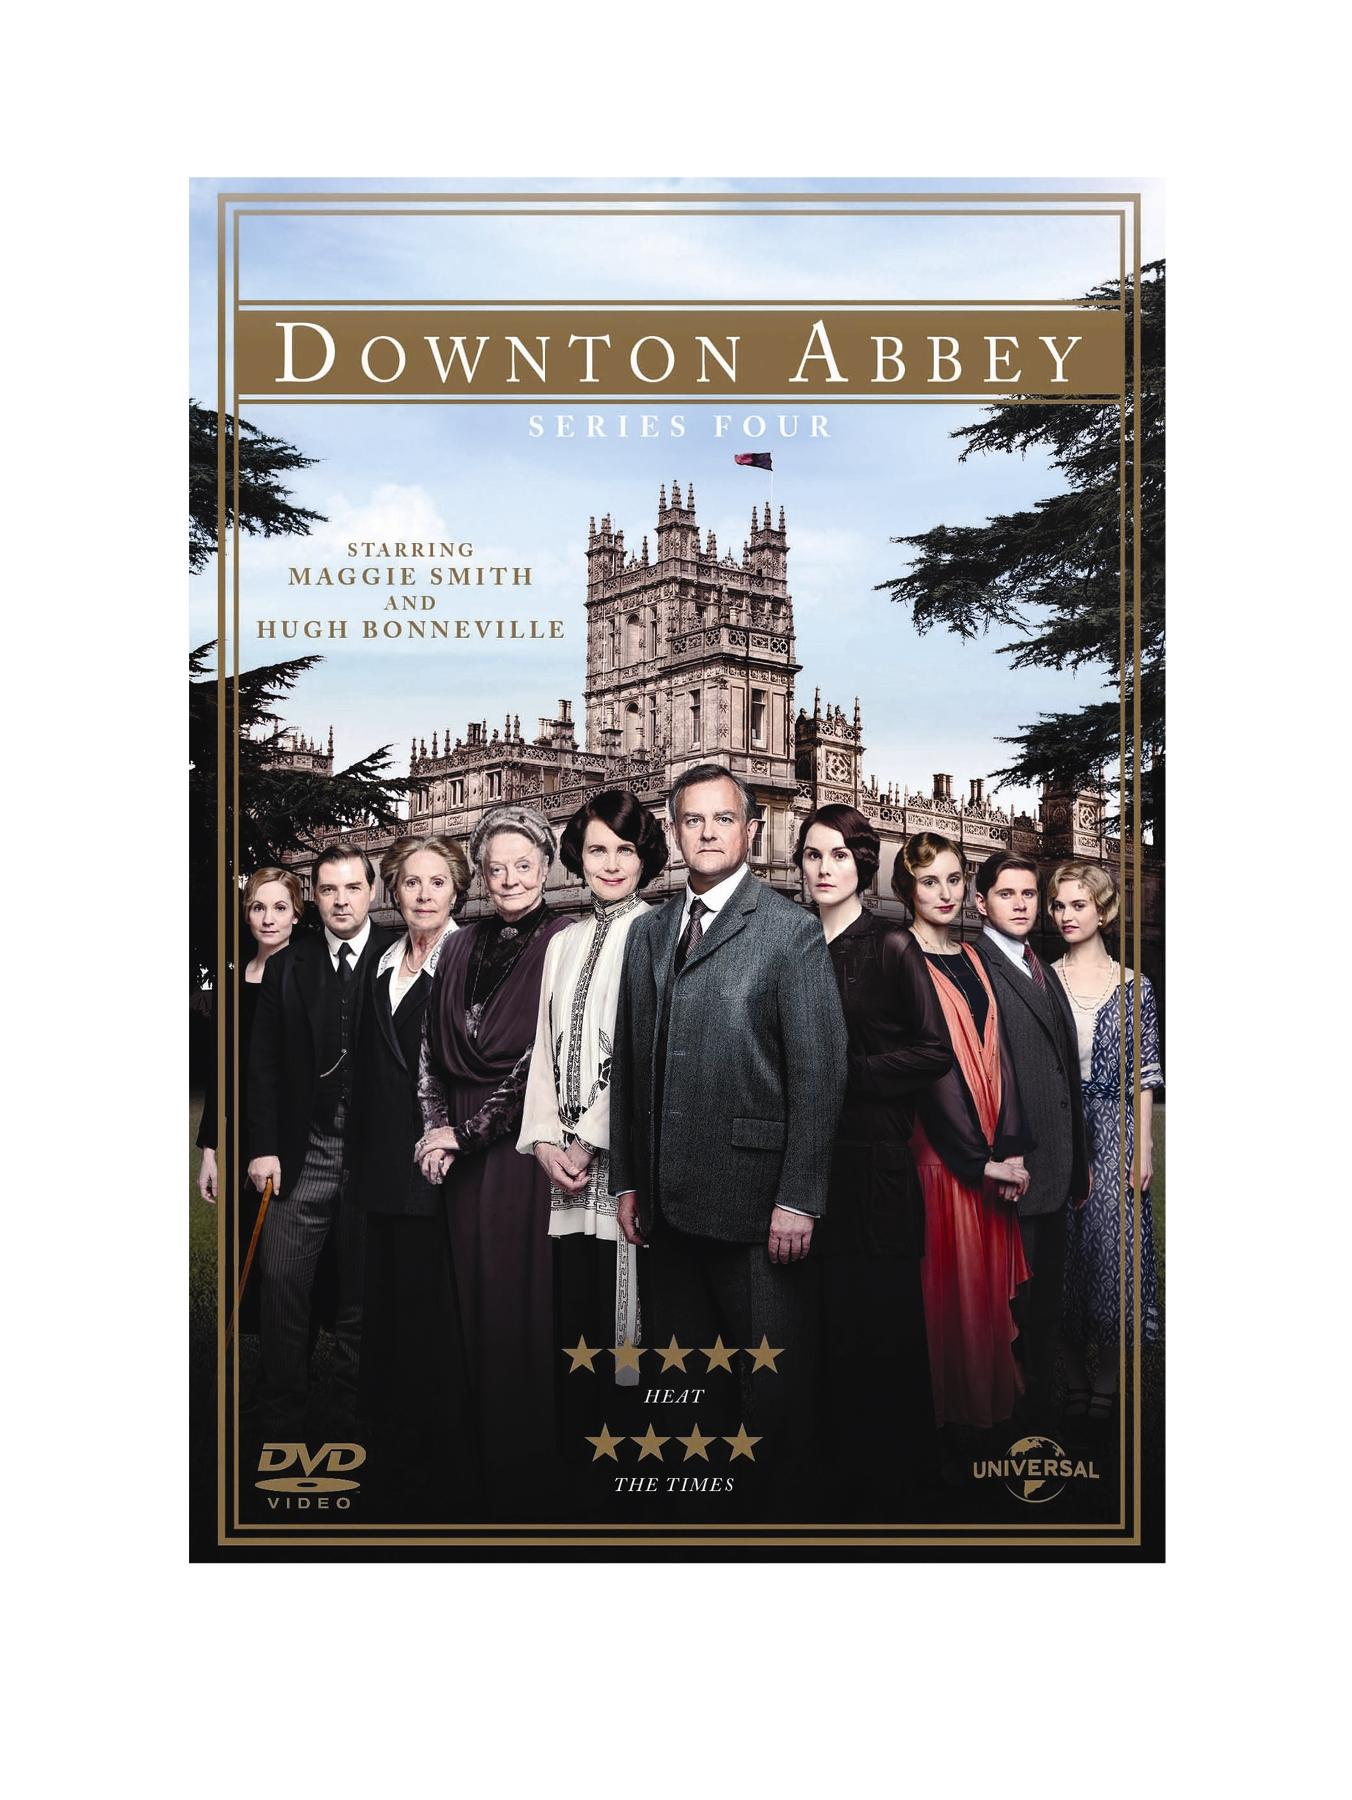 Downton Abbey - Series 4 DVD